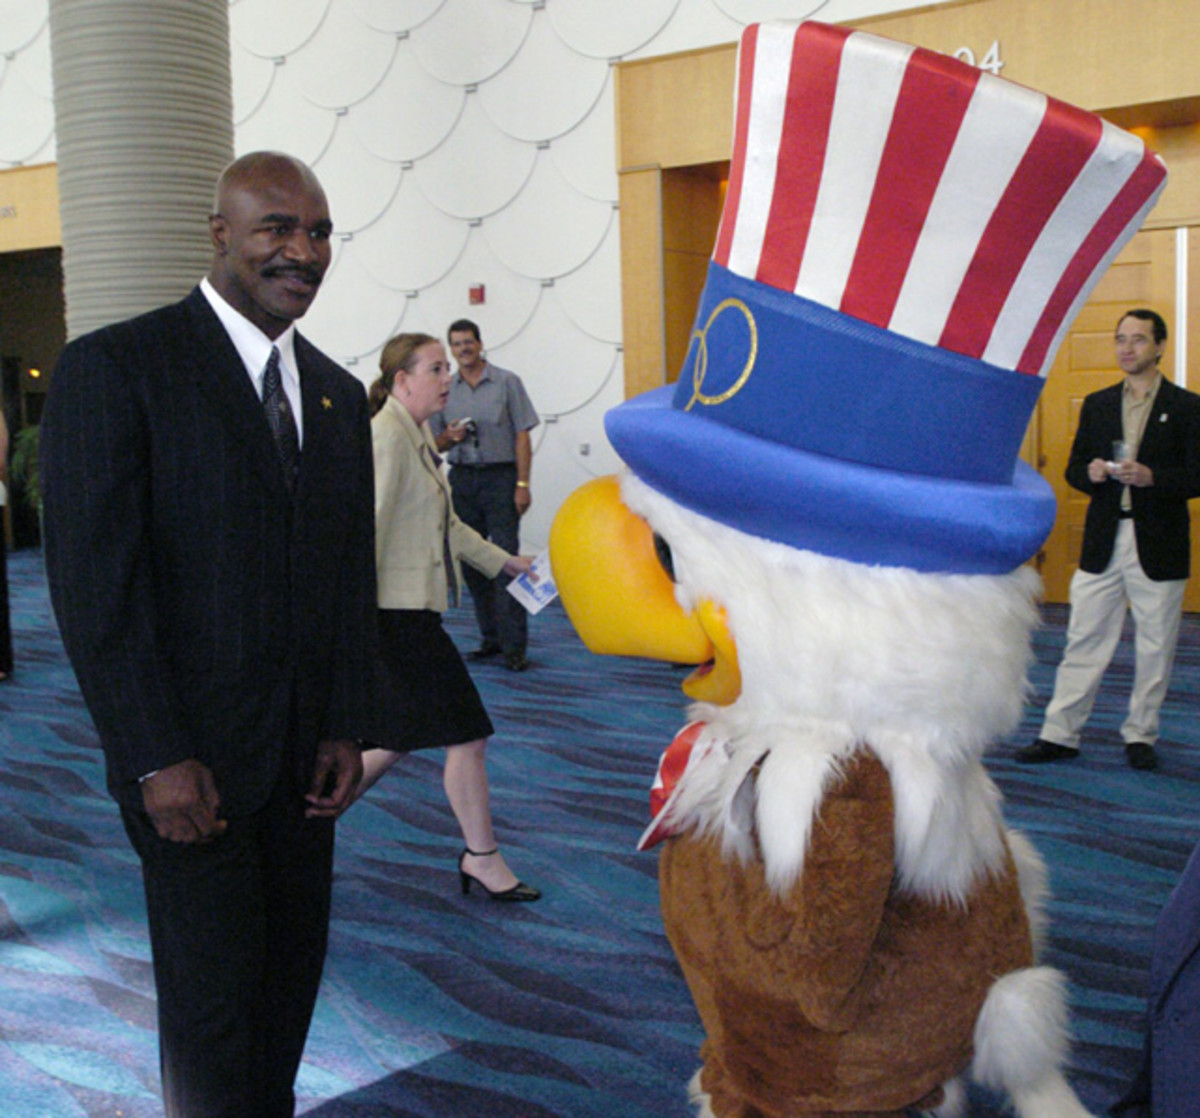 Evander Holyfield and Sam the Eagle